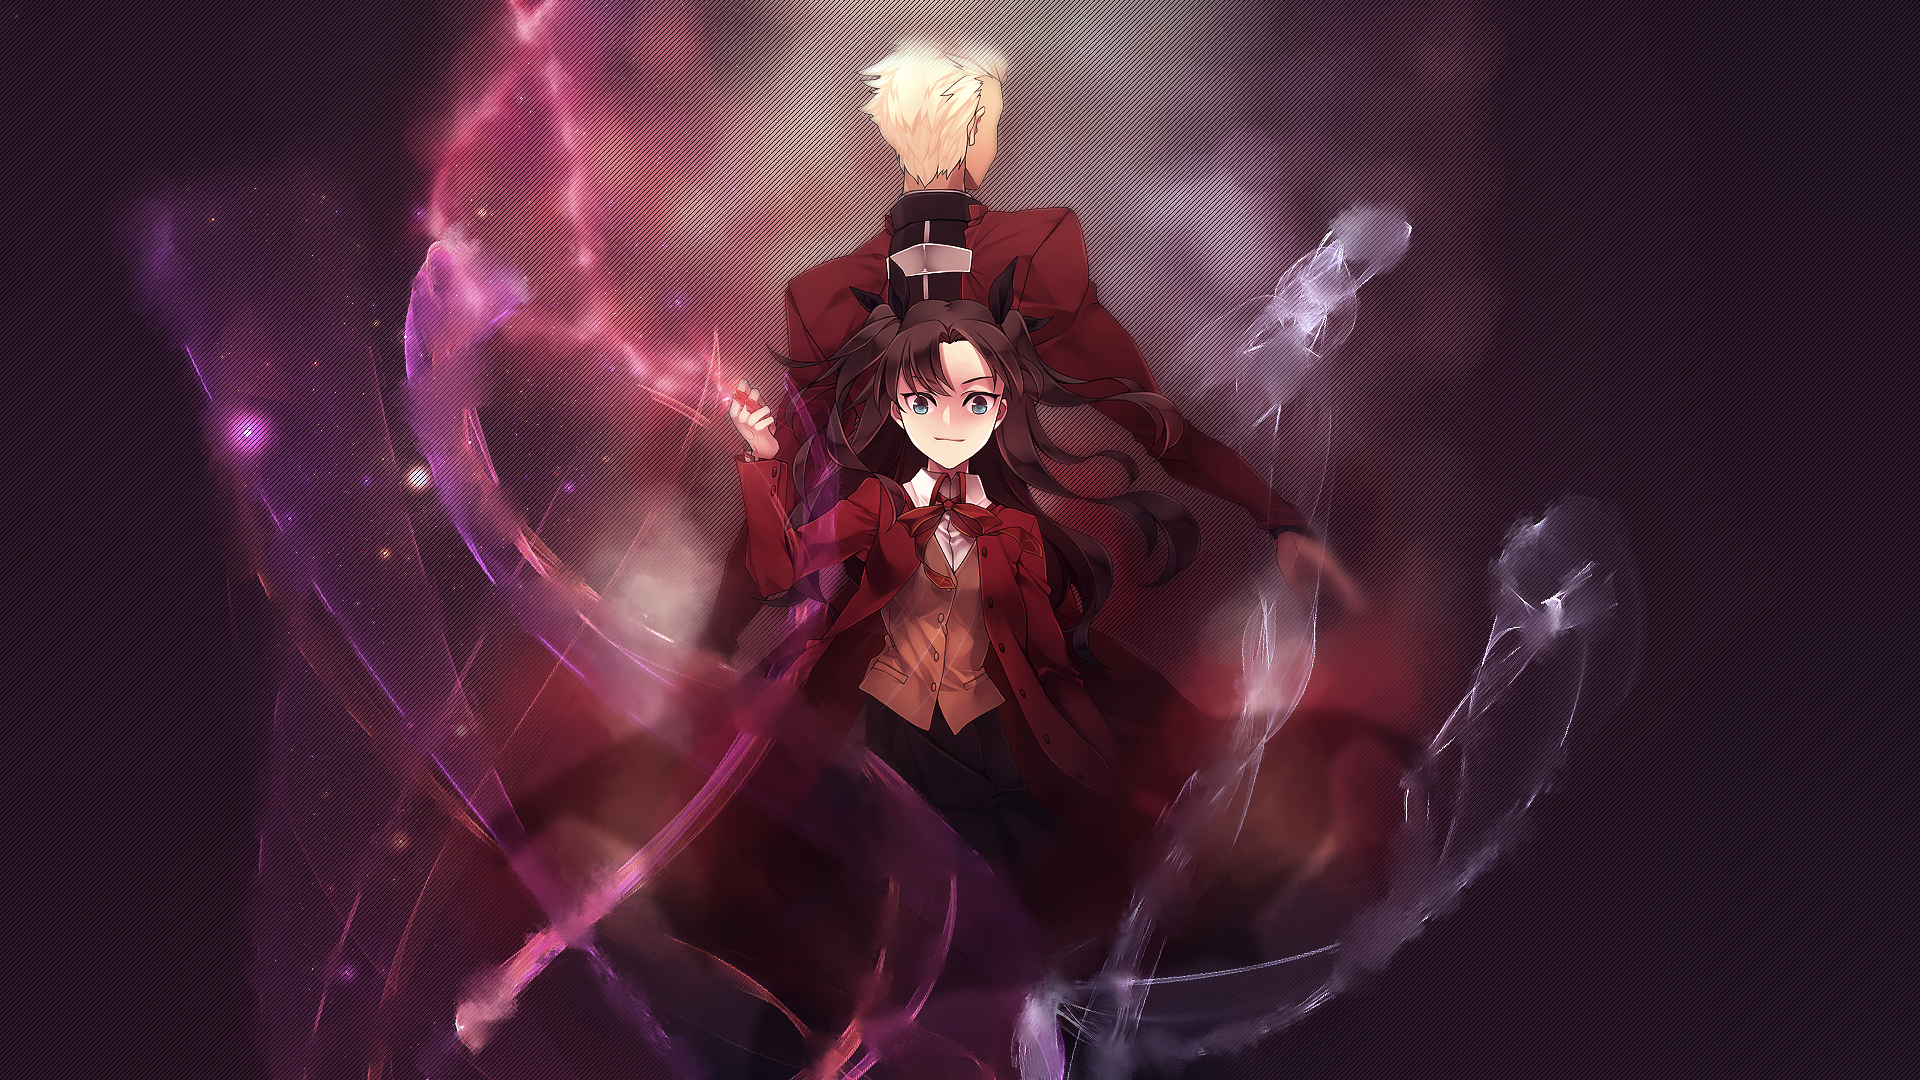 Rin And Archer Fate Stay Night Ubw By Epicsuketsune On Deviantart